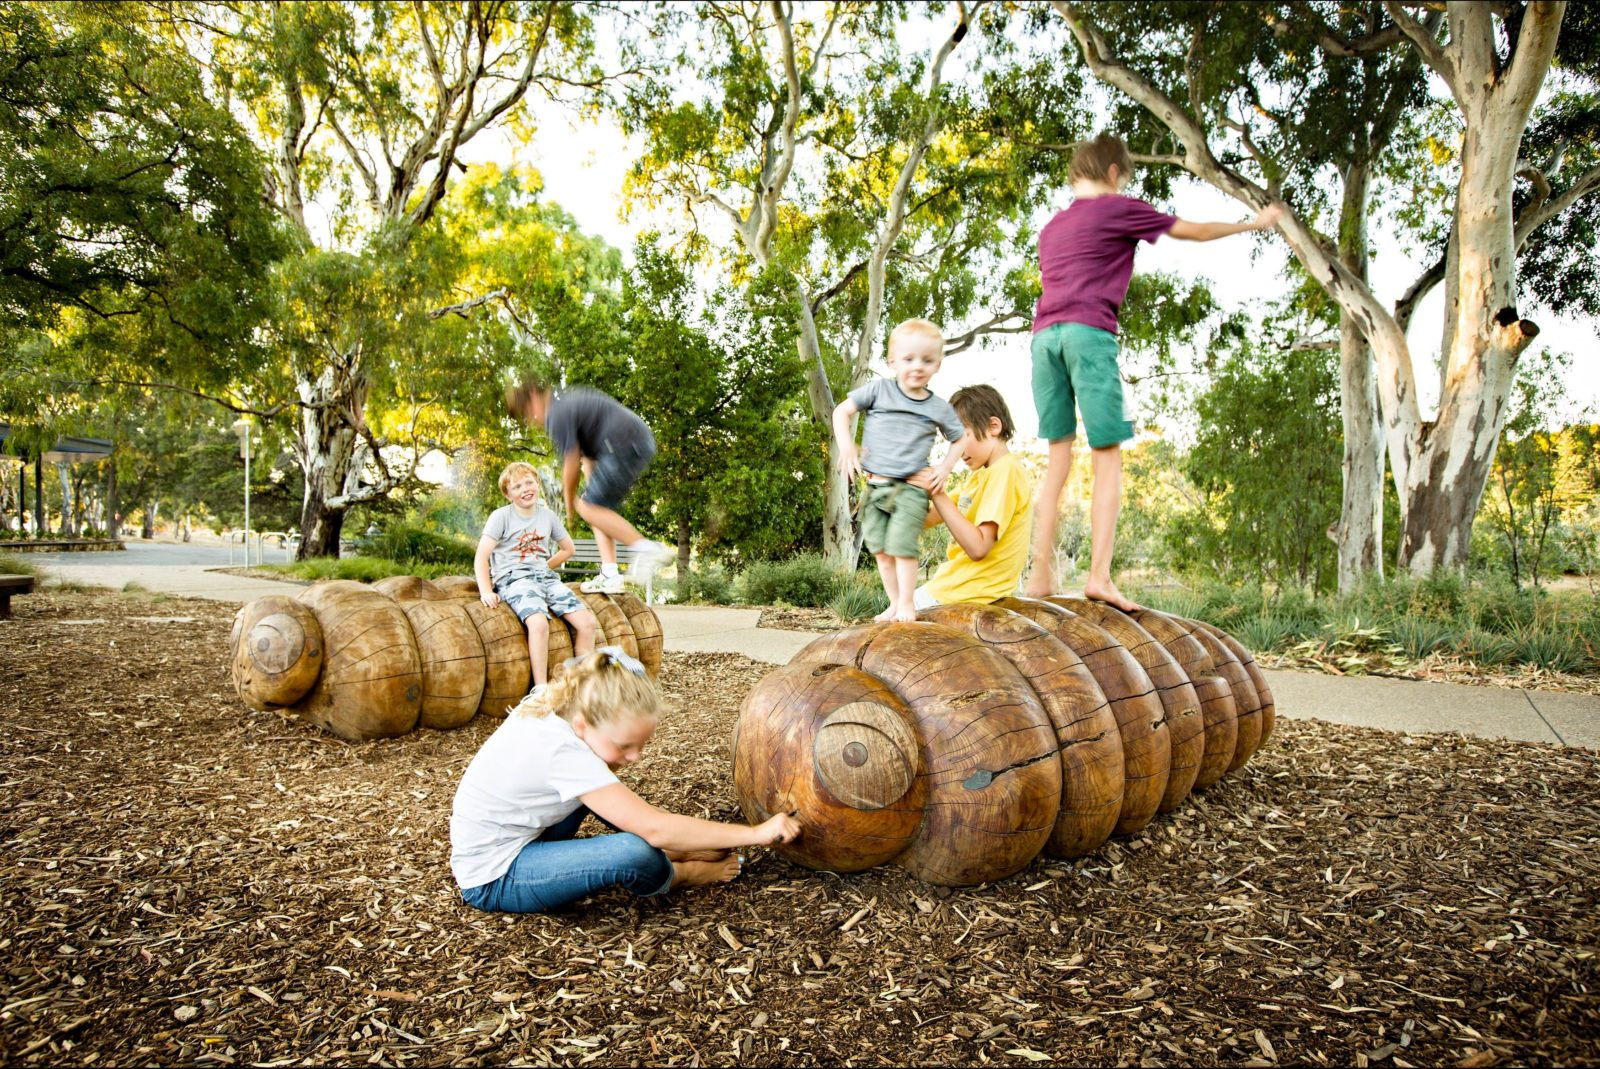 playground, children, wooden sculptures, playing